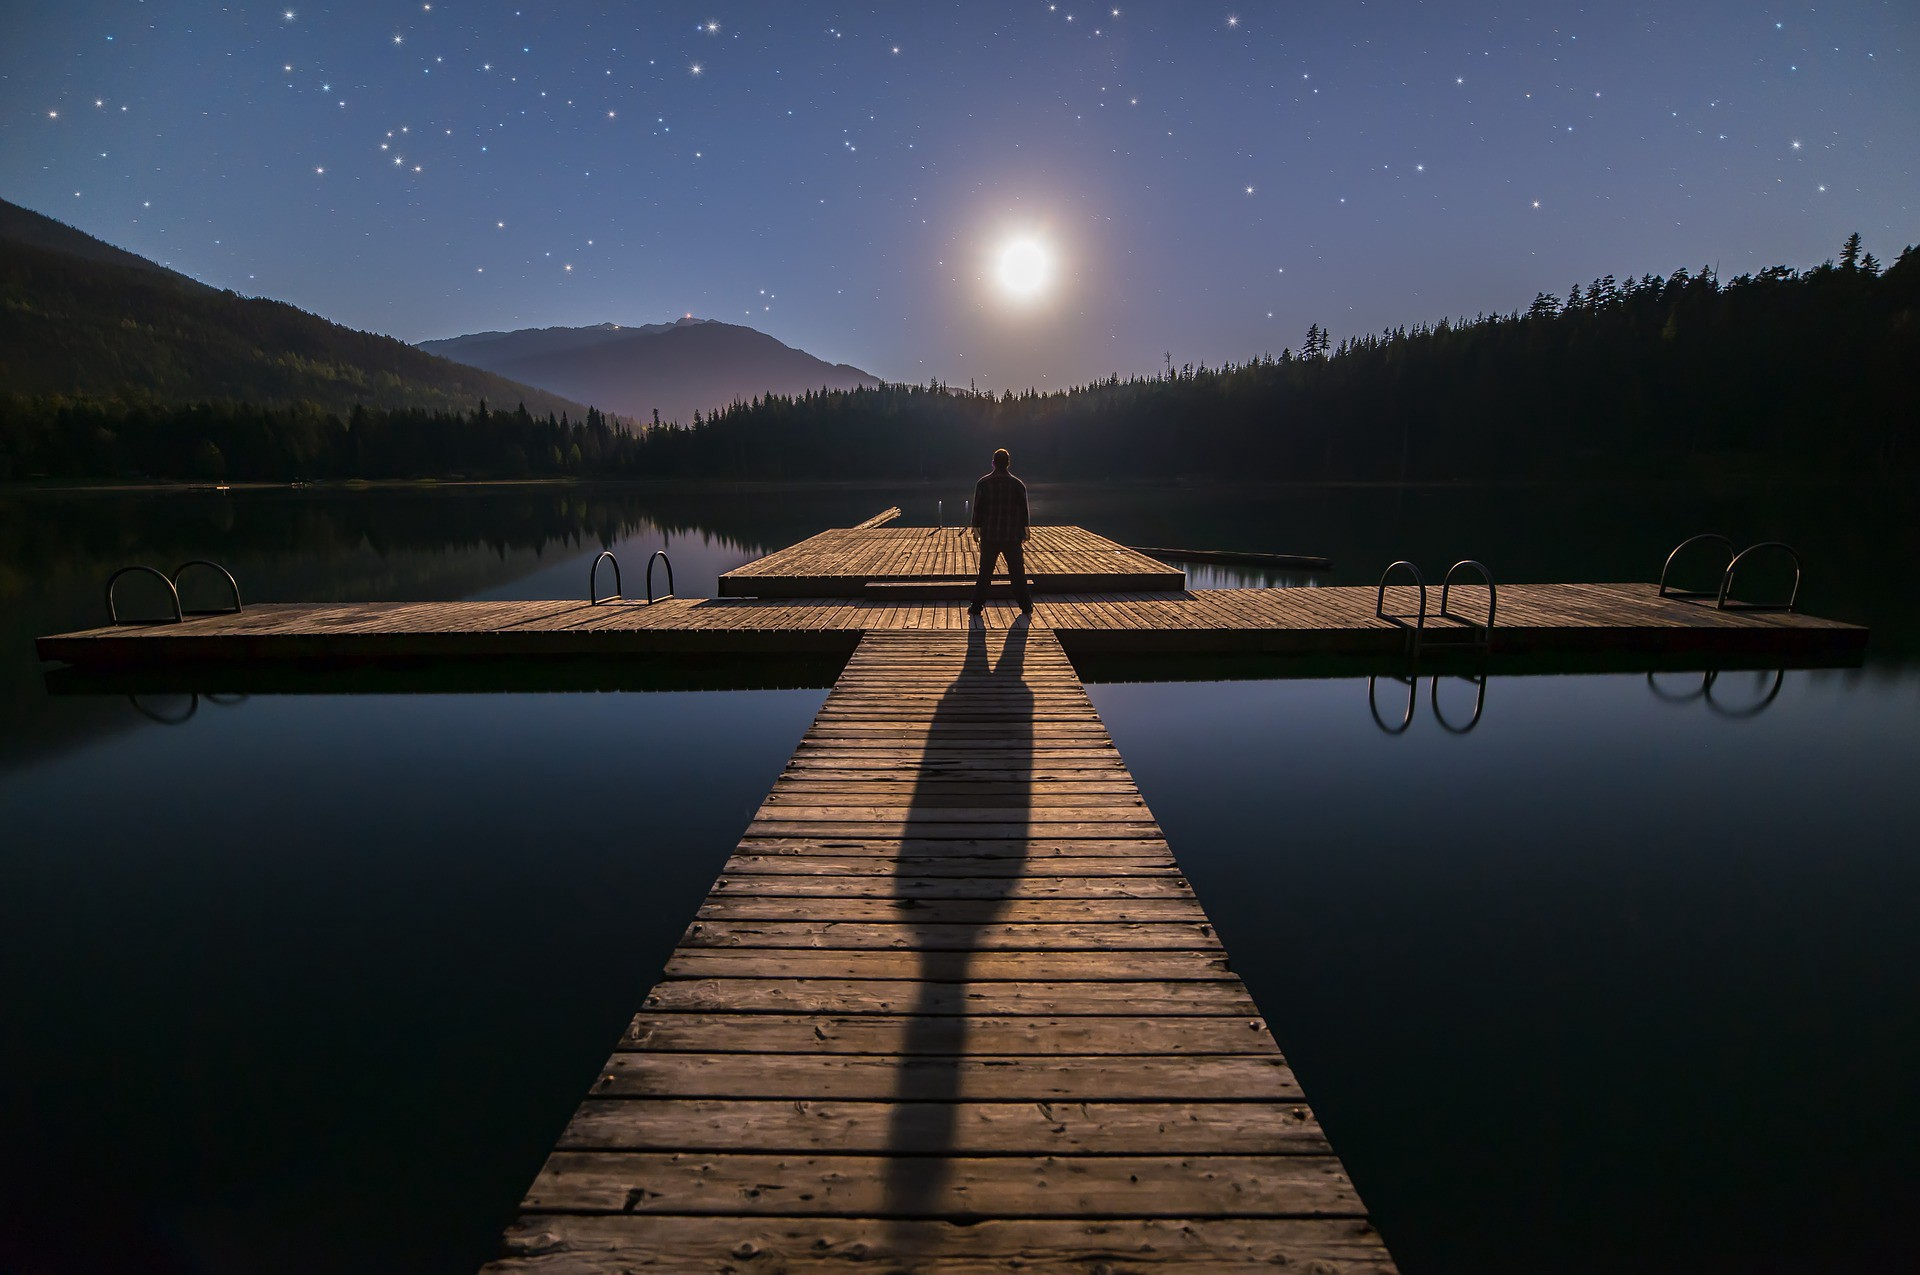 A guy staring at the moon.